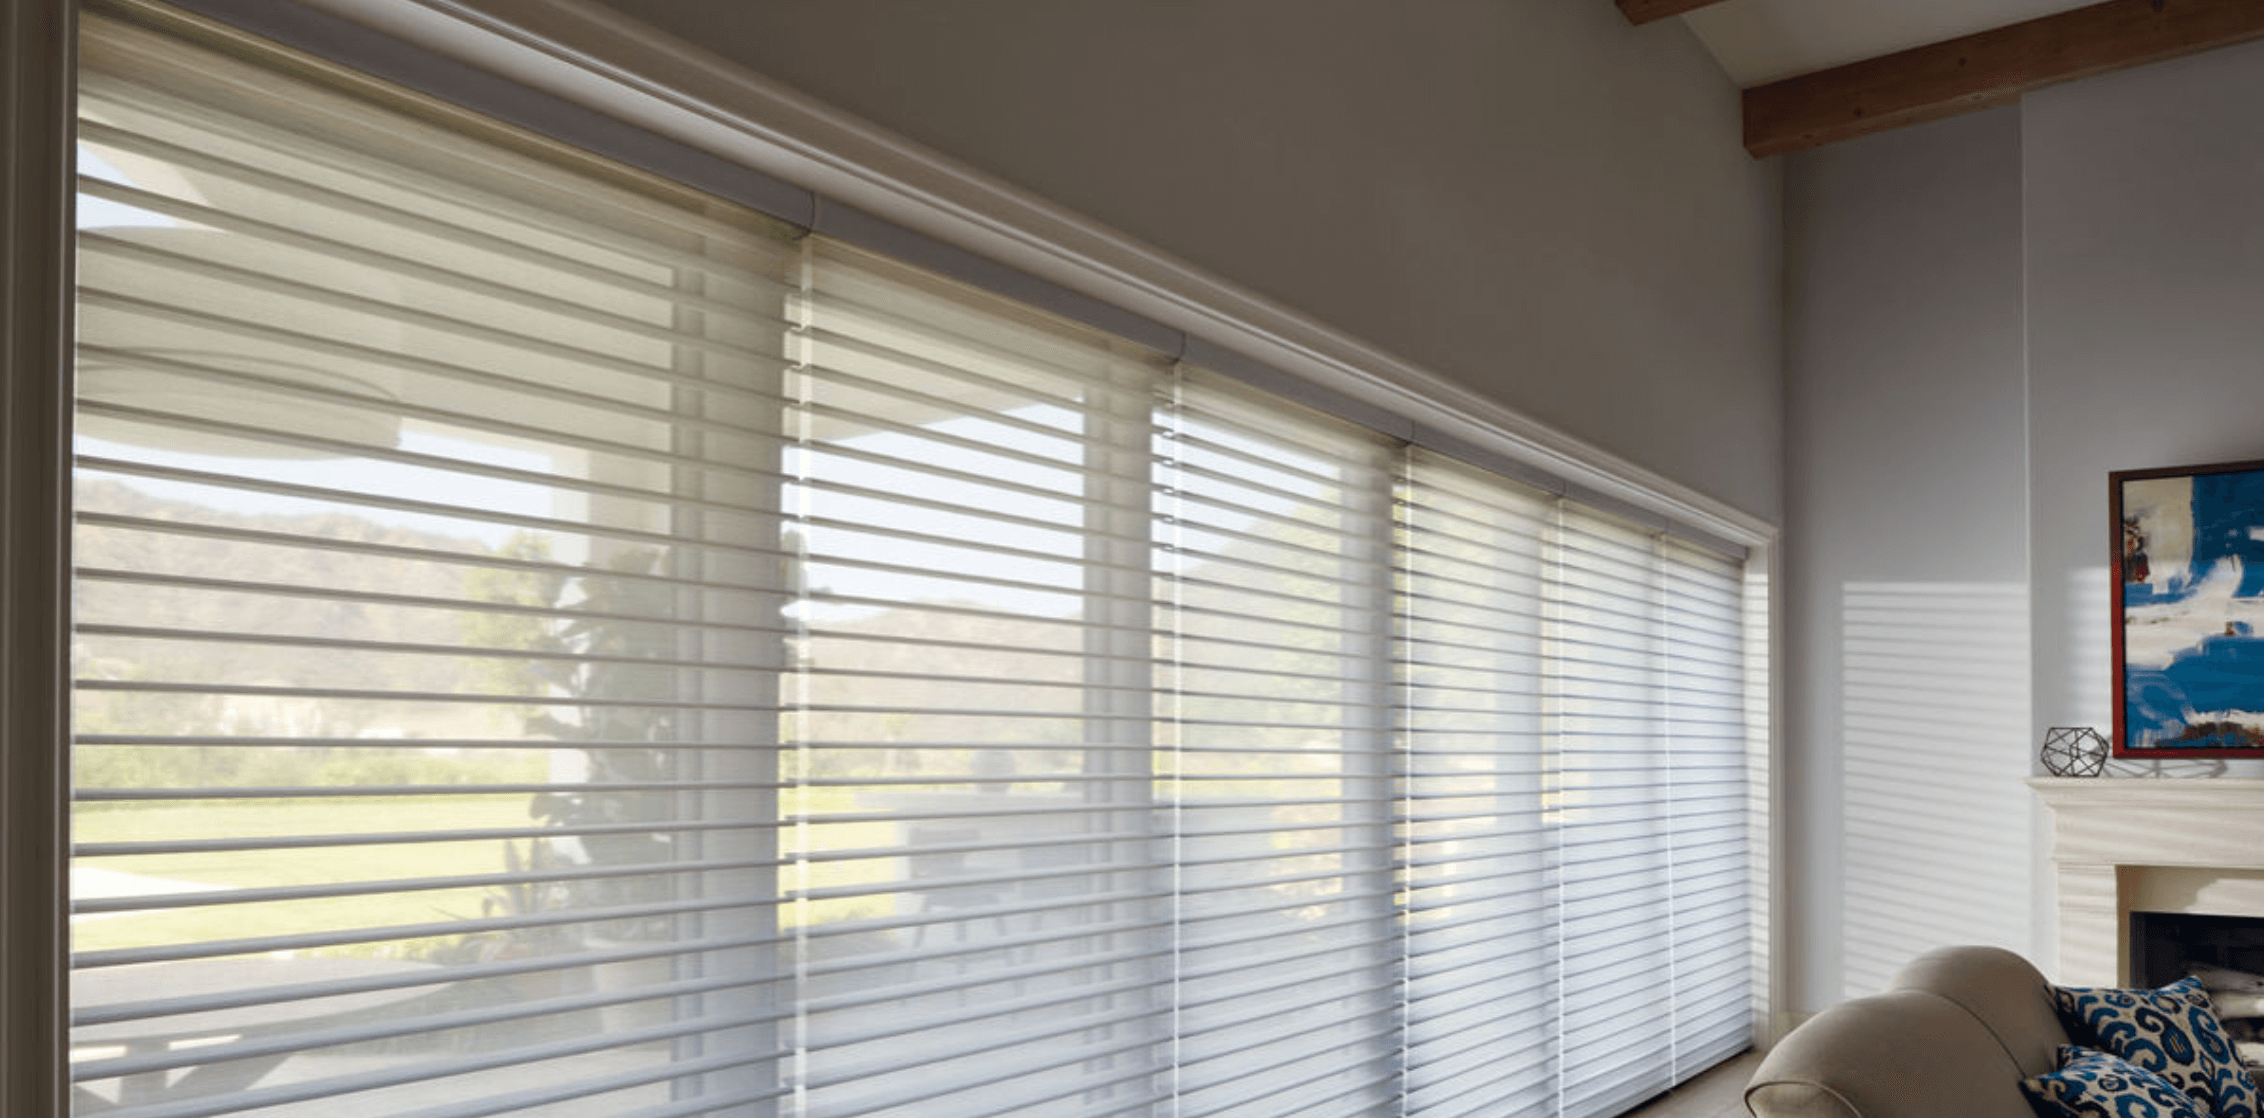 Benefits of Silhouette Window Shadings for Homes in Charlotte, NC